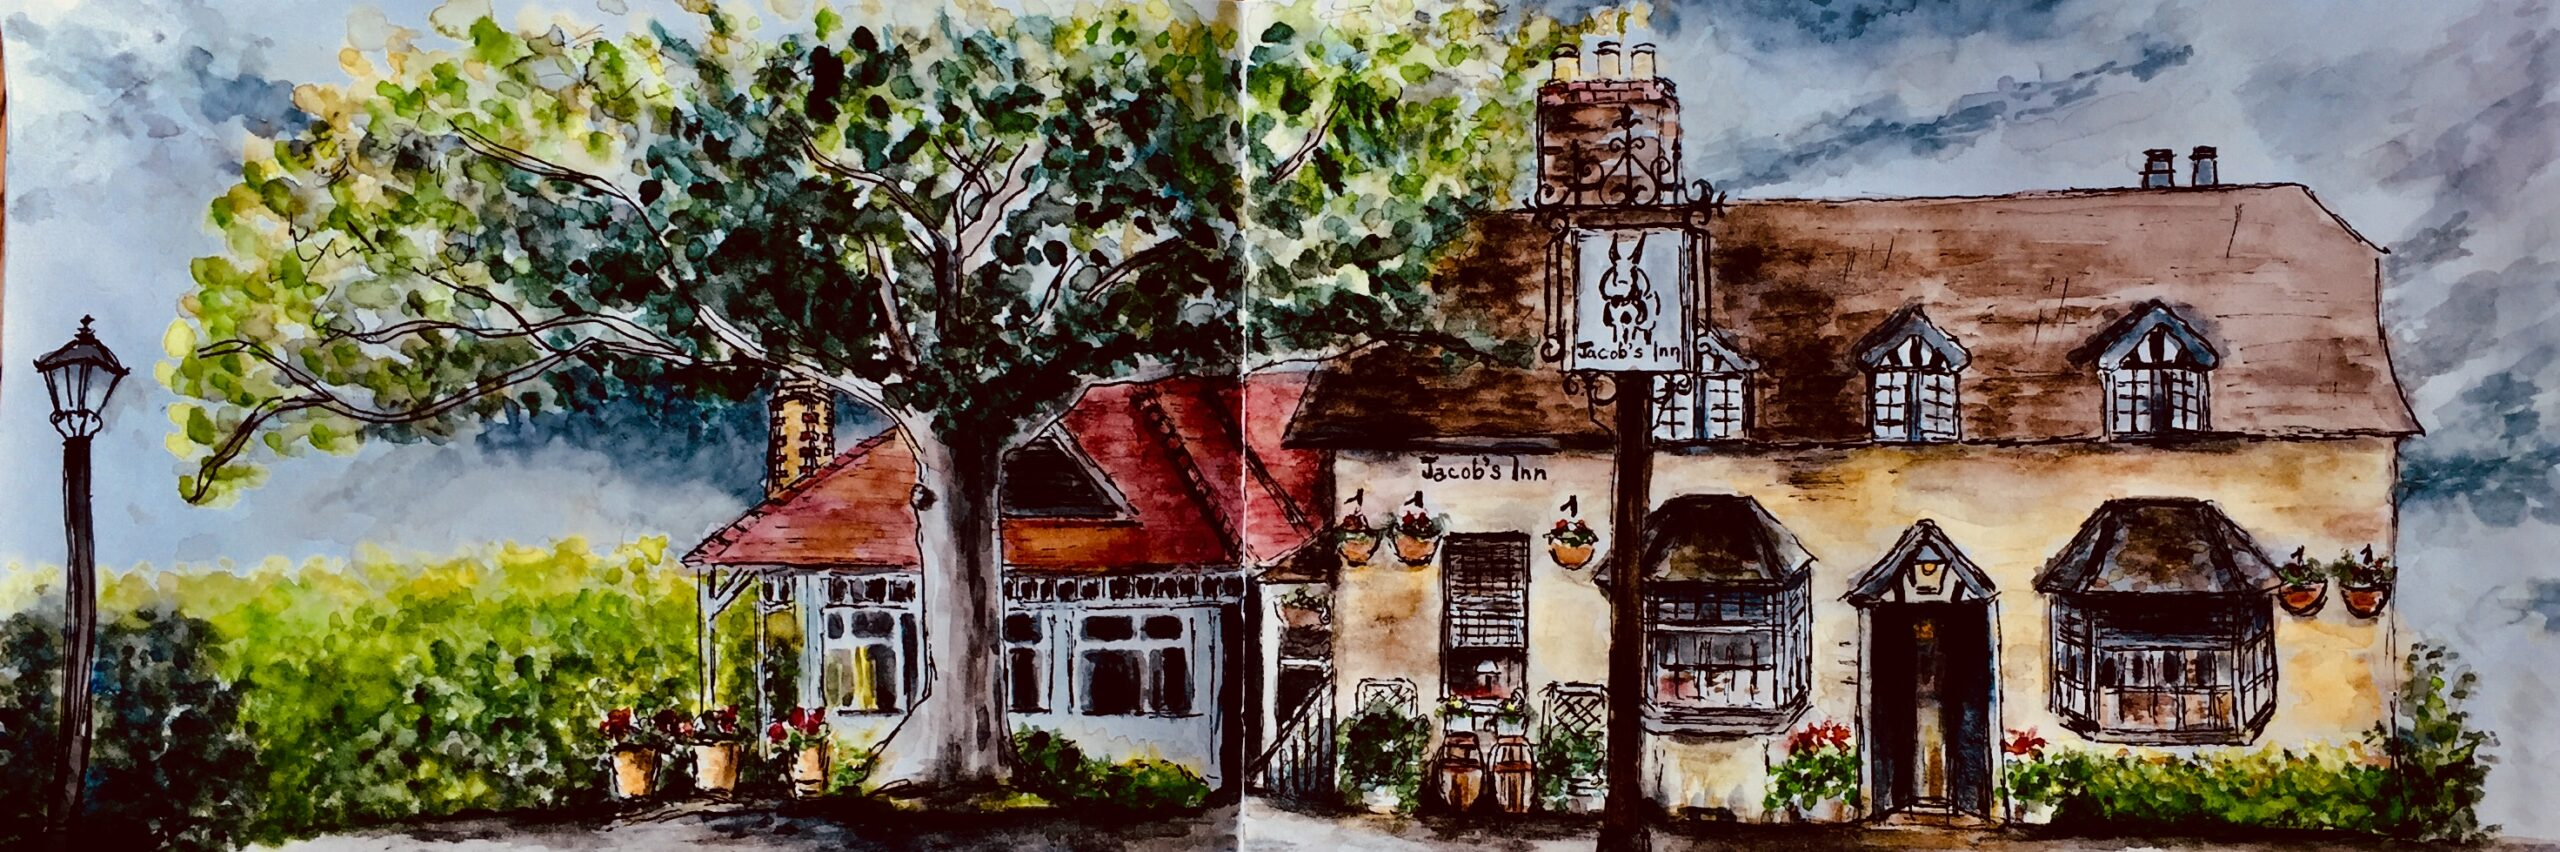 Jacob's Inn at Wolvercote Oxfordshire Watercolour and Ink Original Art Painting